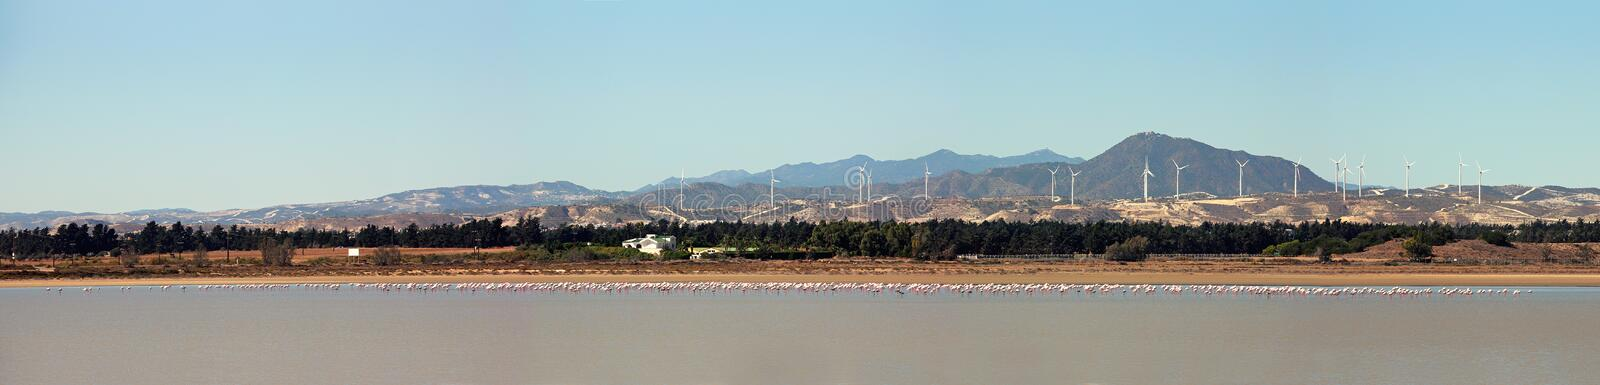 Panorama. Flock of pink flamingos at the Larnaca salt lake, Cyprus. Hills with windmills on background.  stock photo